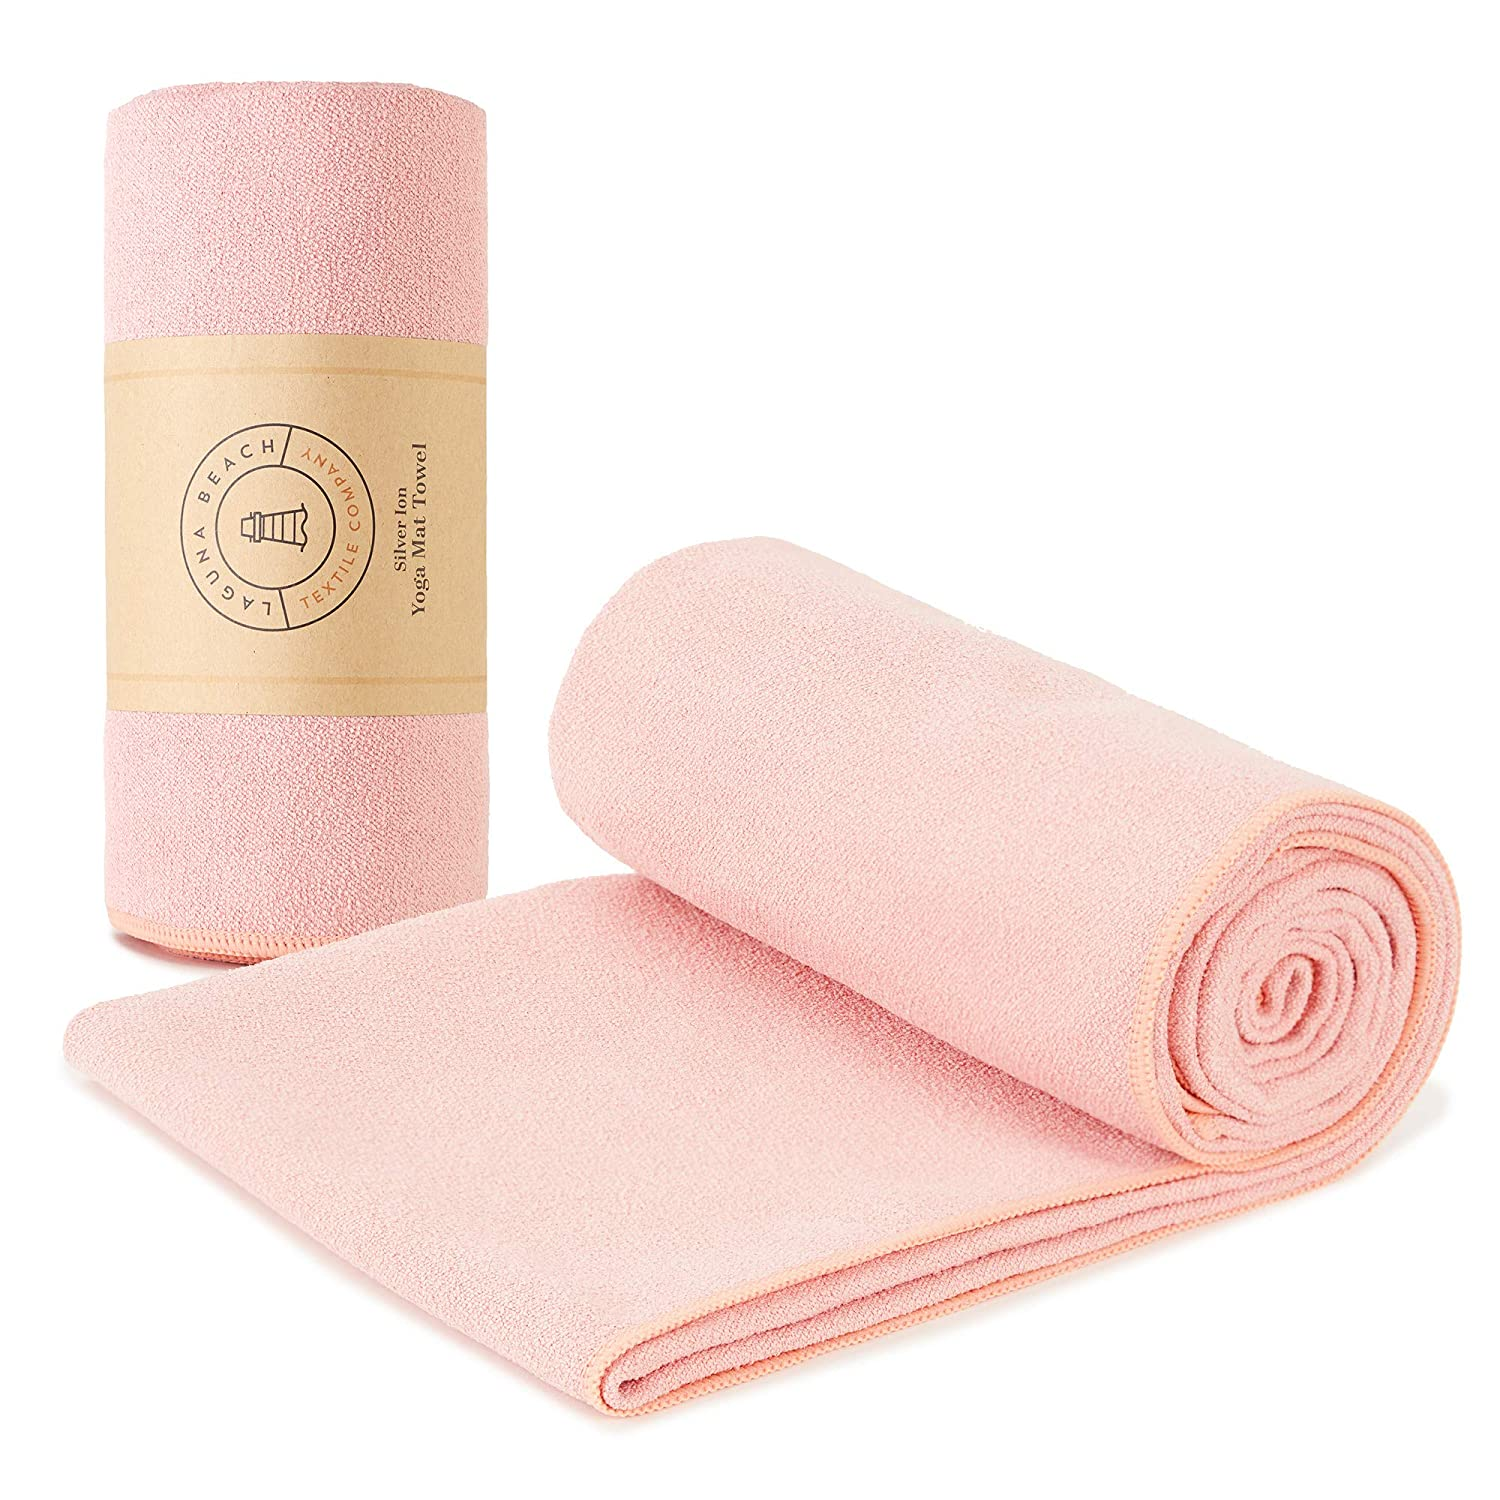 laguna beach towels Yoga Mat Towel by Laguna Beach Textile Co